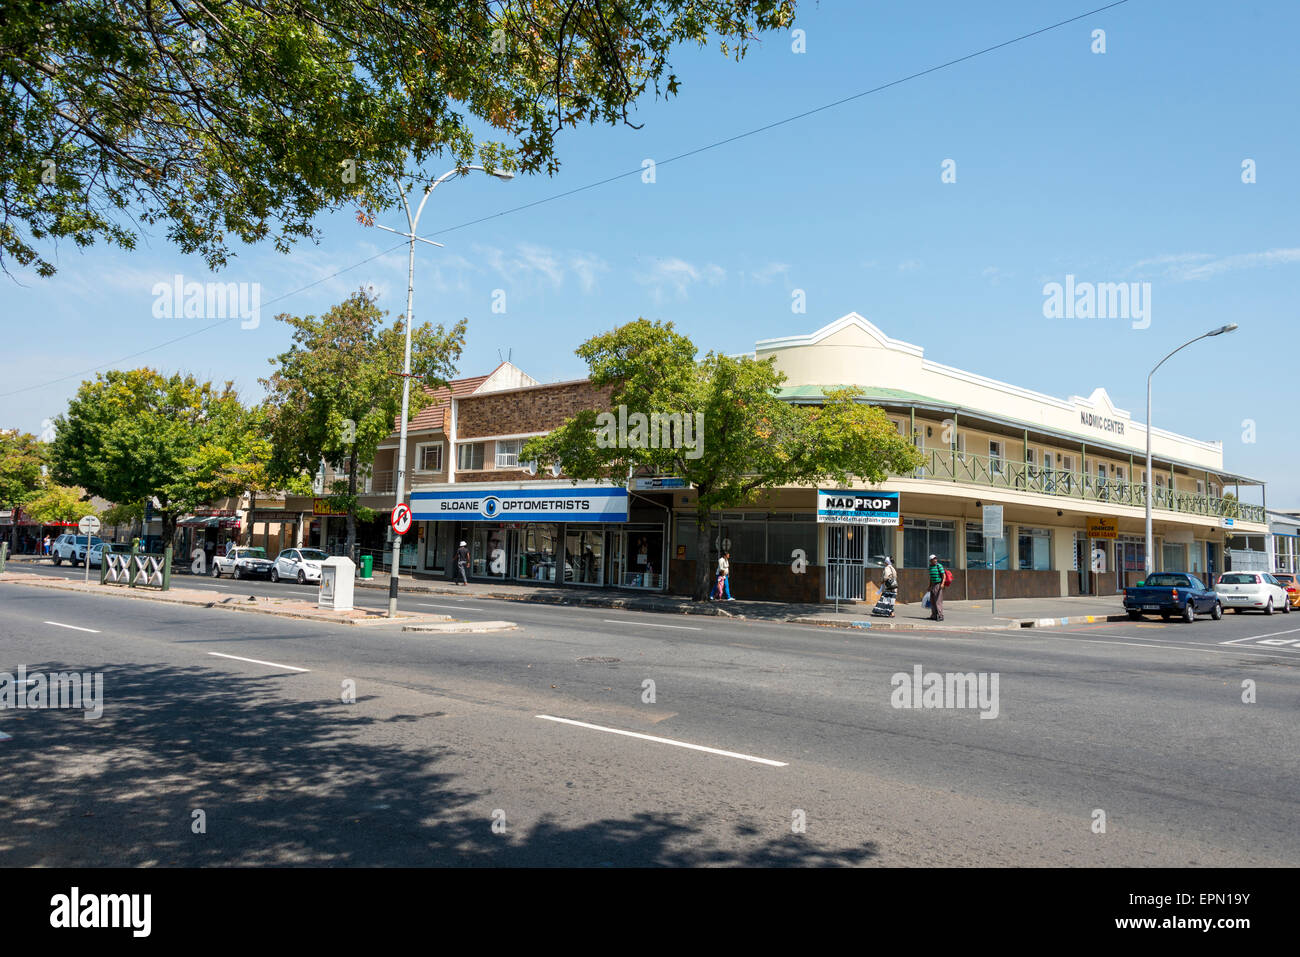 Main Street, Somerset West, Helderberg District, Cape Peninsula, Western Cape Province, Republic of South Africa - Stock Image